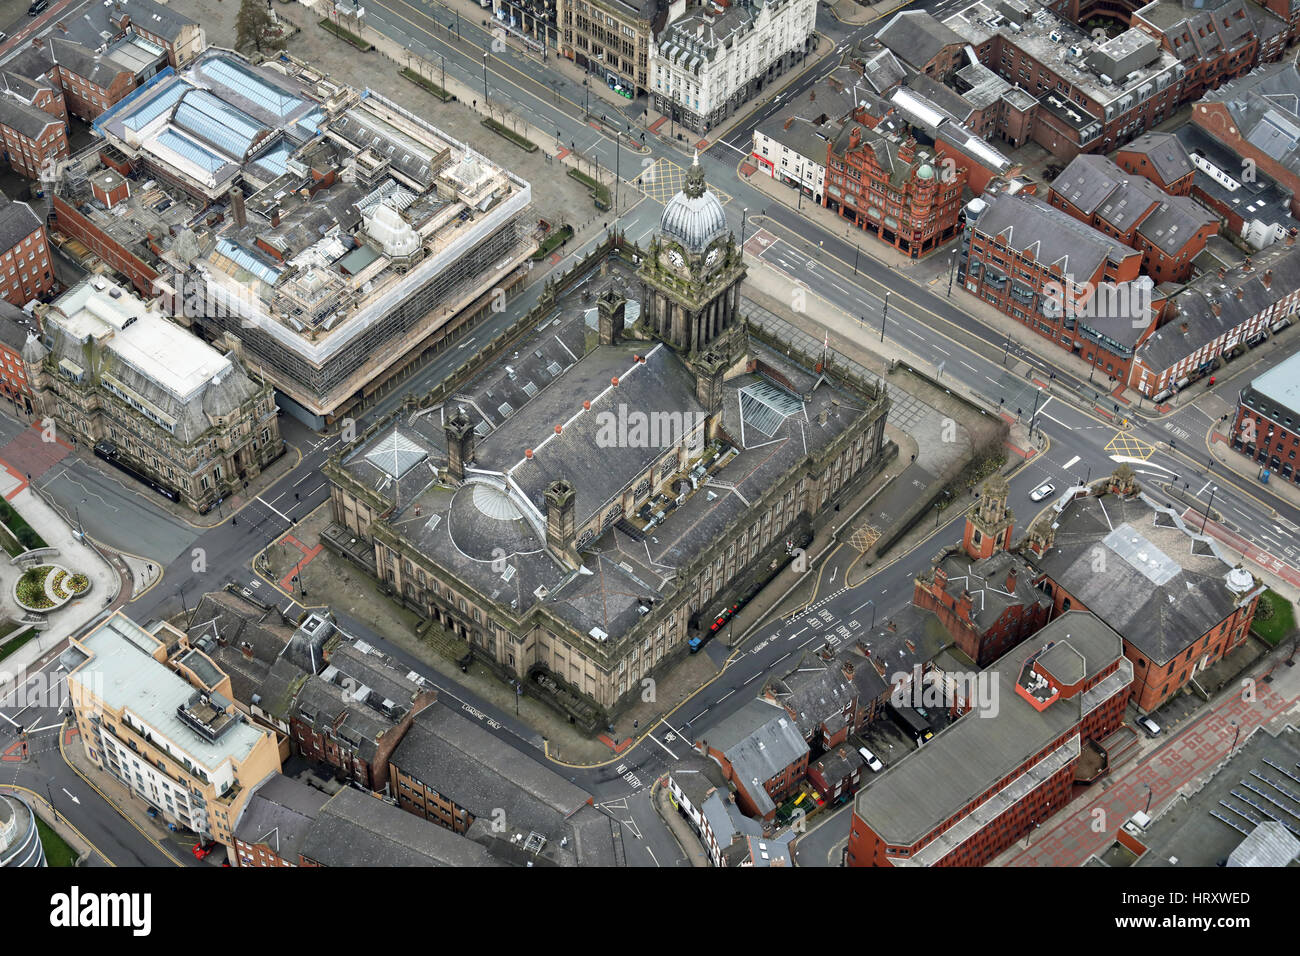 aerial view of Leeds Town Hall, West Yorkshire, UK - Stock Image